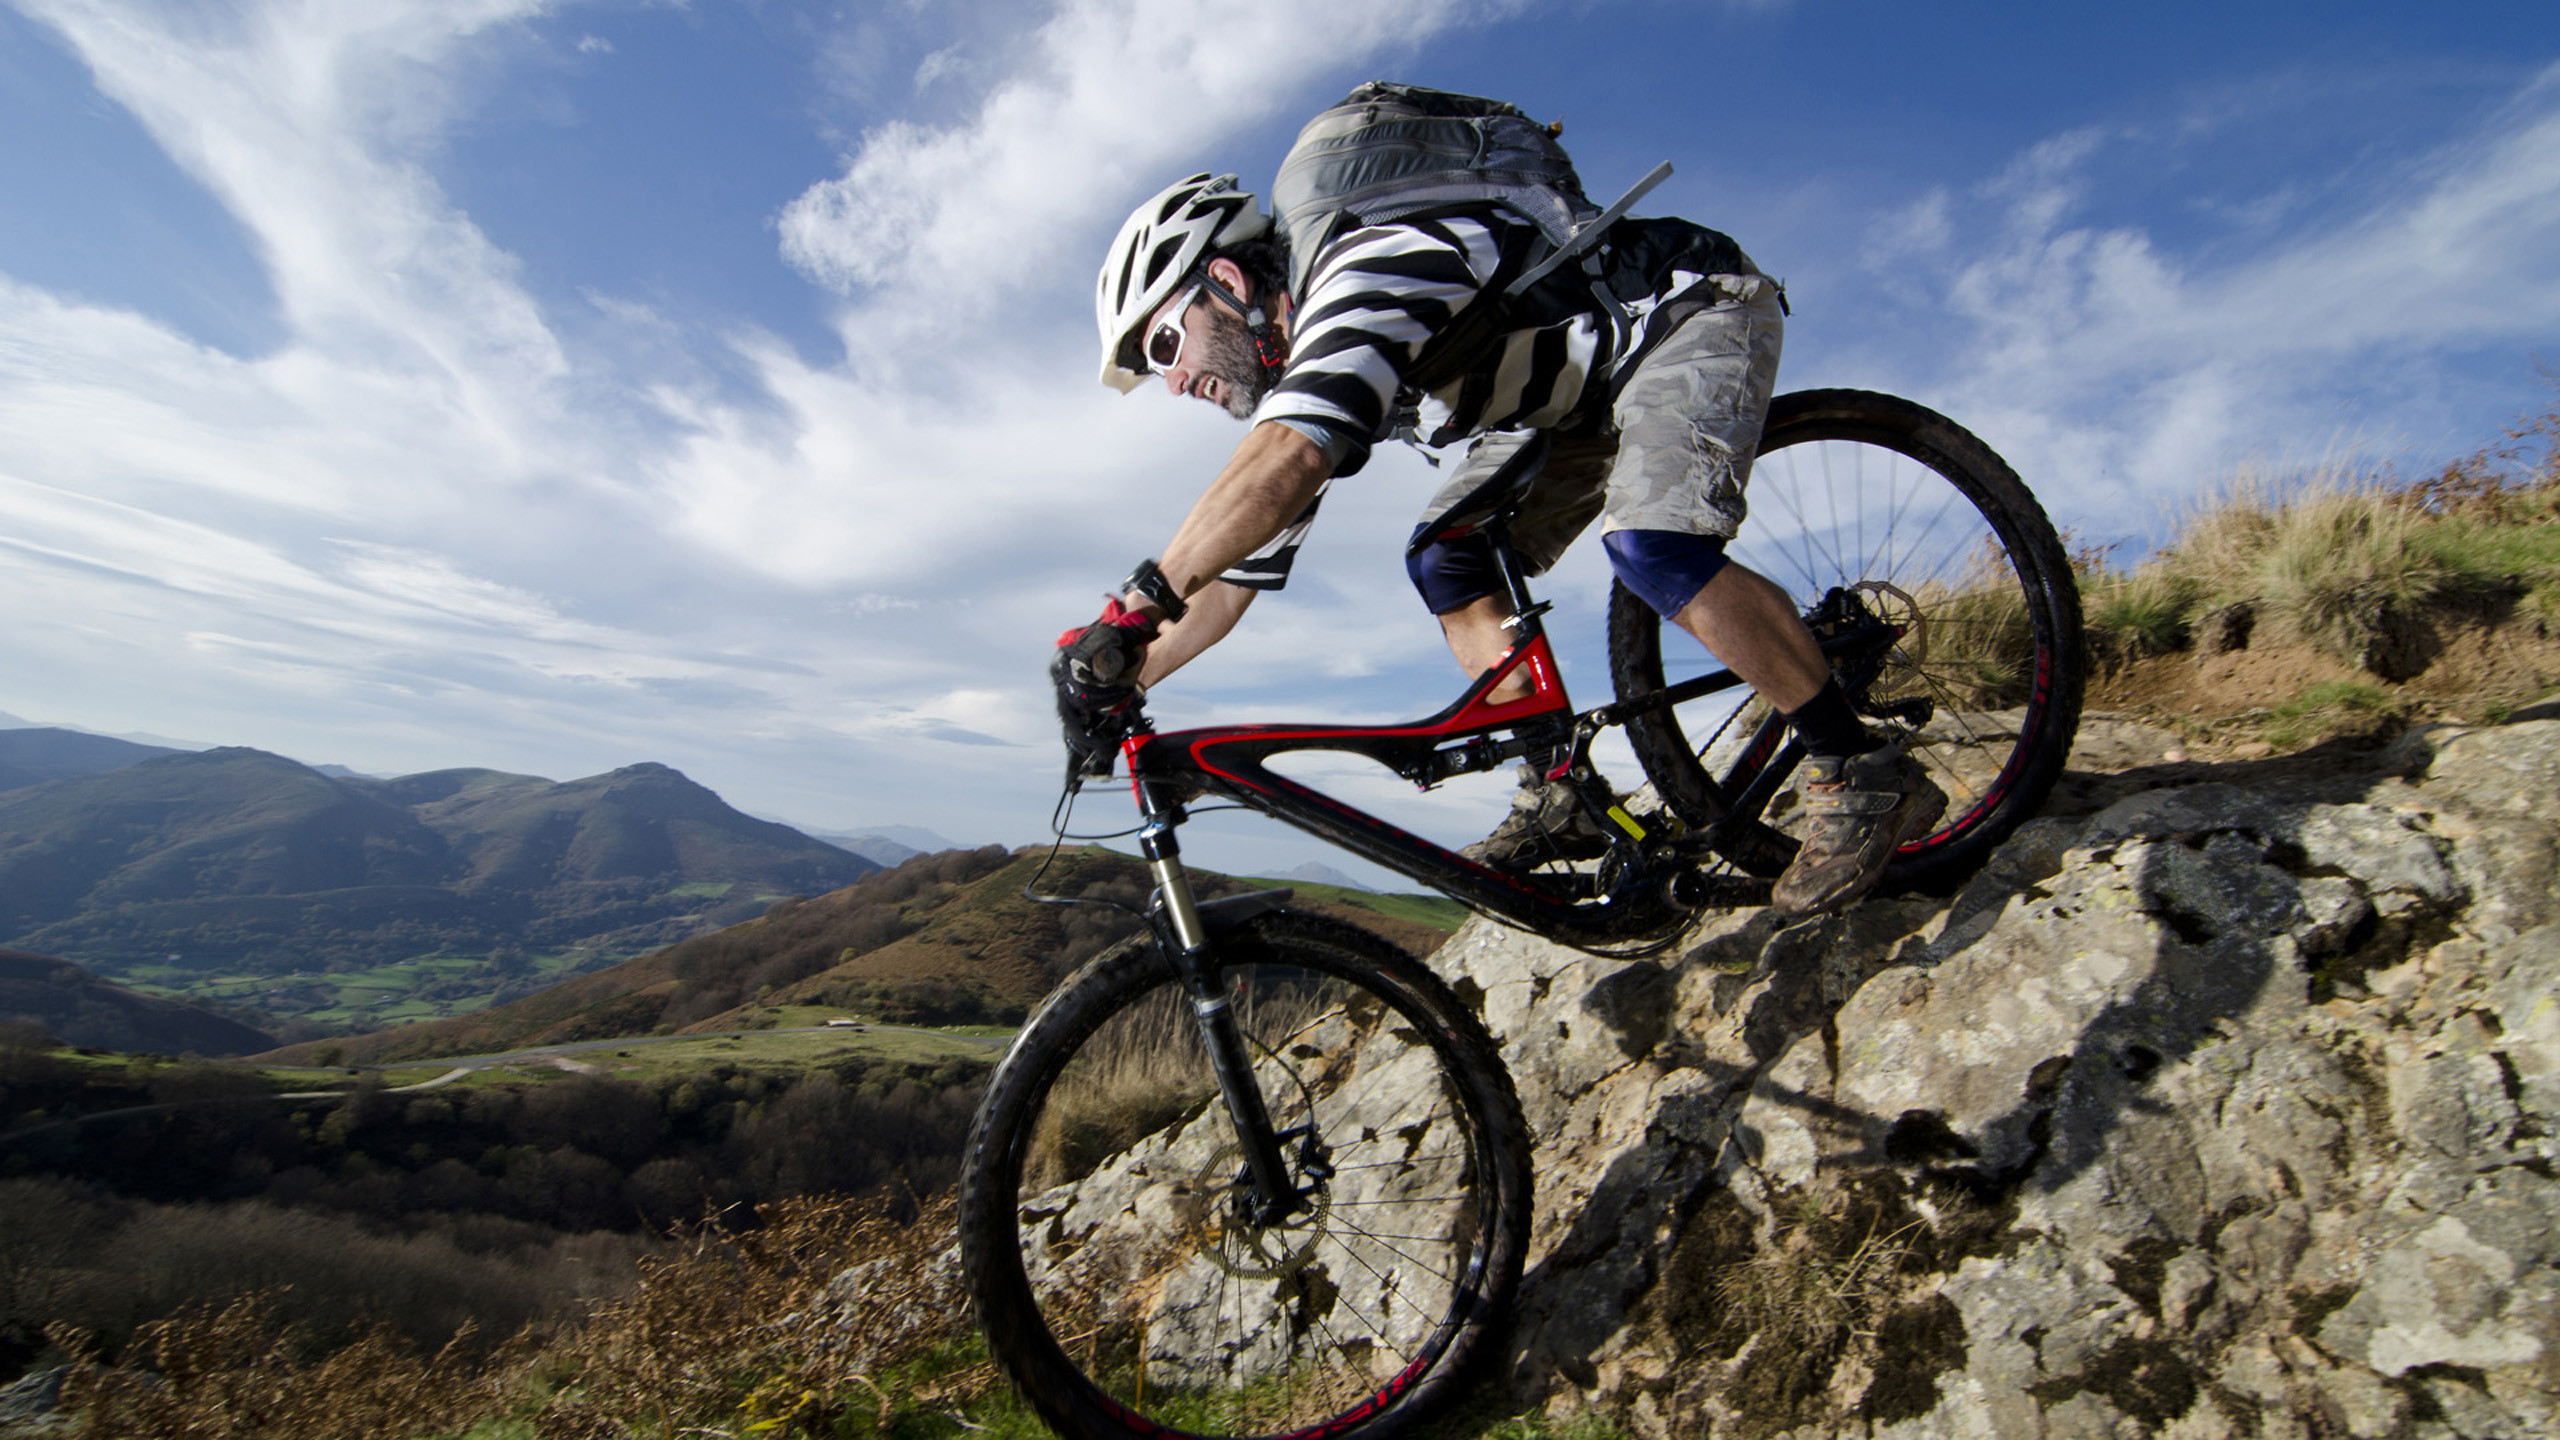 Res: 2560x1440, Mountain Bike Wallpapers : Get Free top quality Mountain Bike Wallpapers  for your desktop PC background